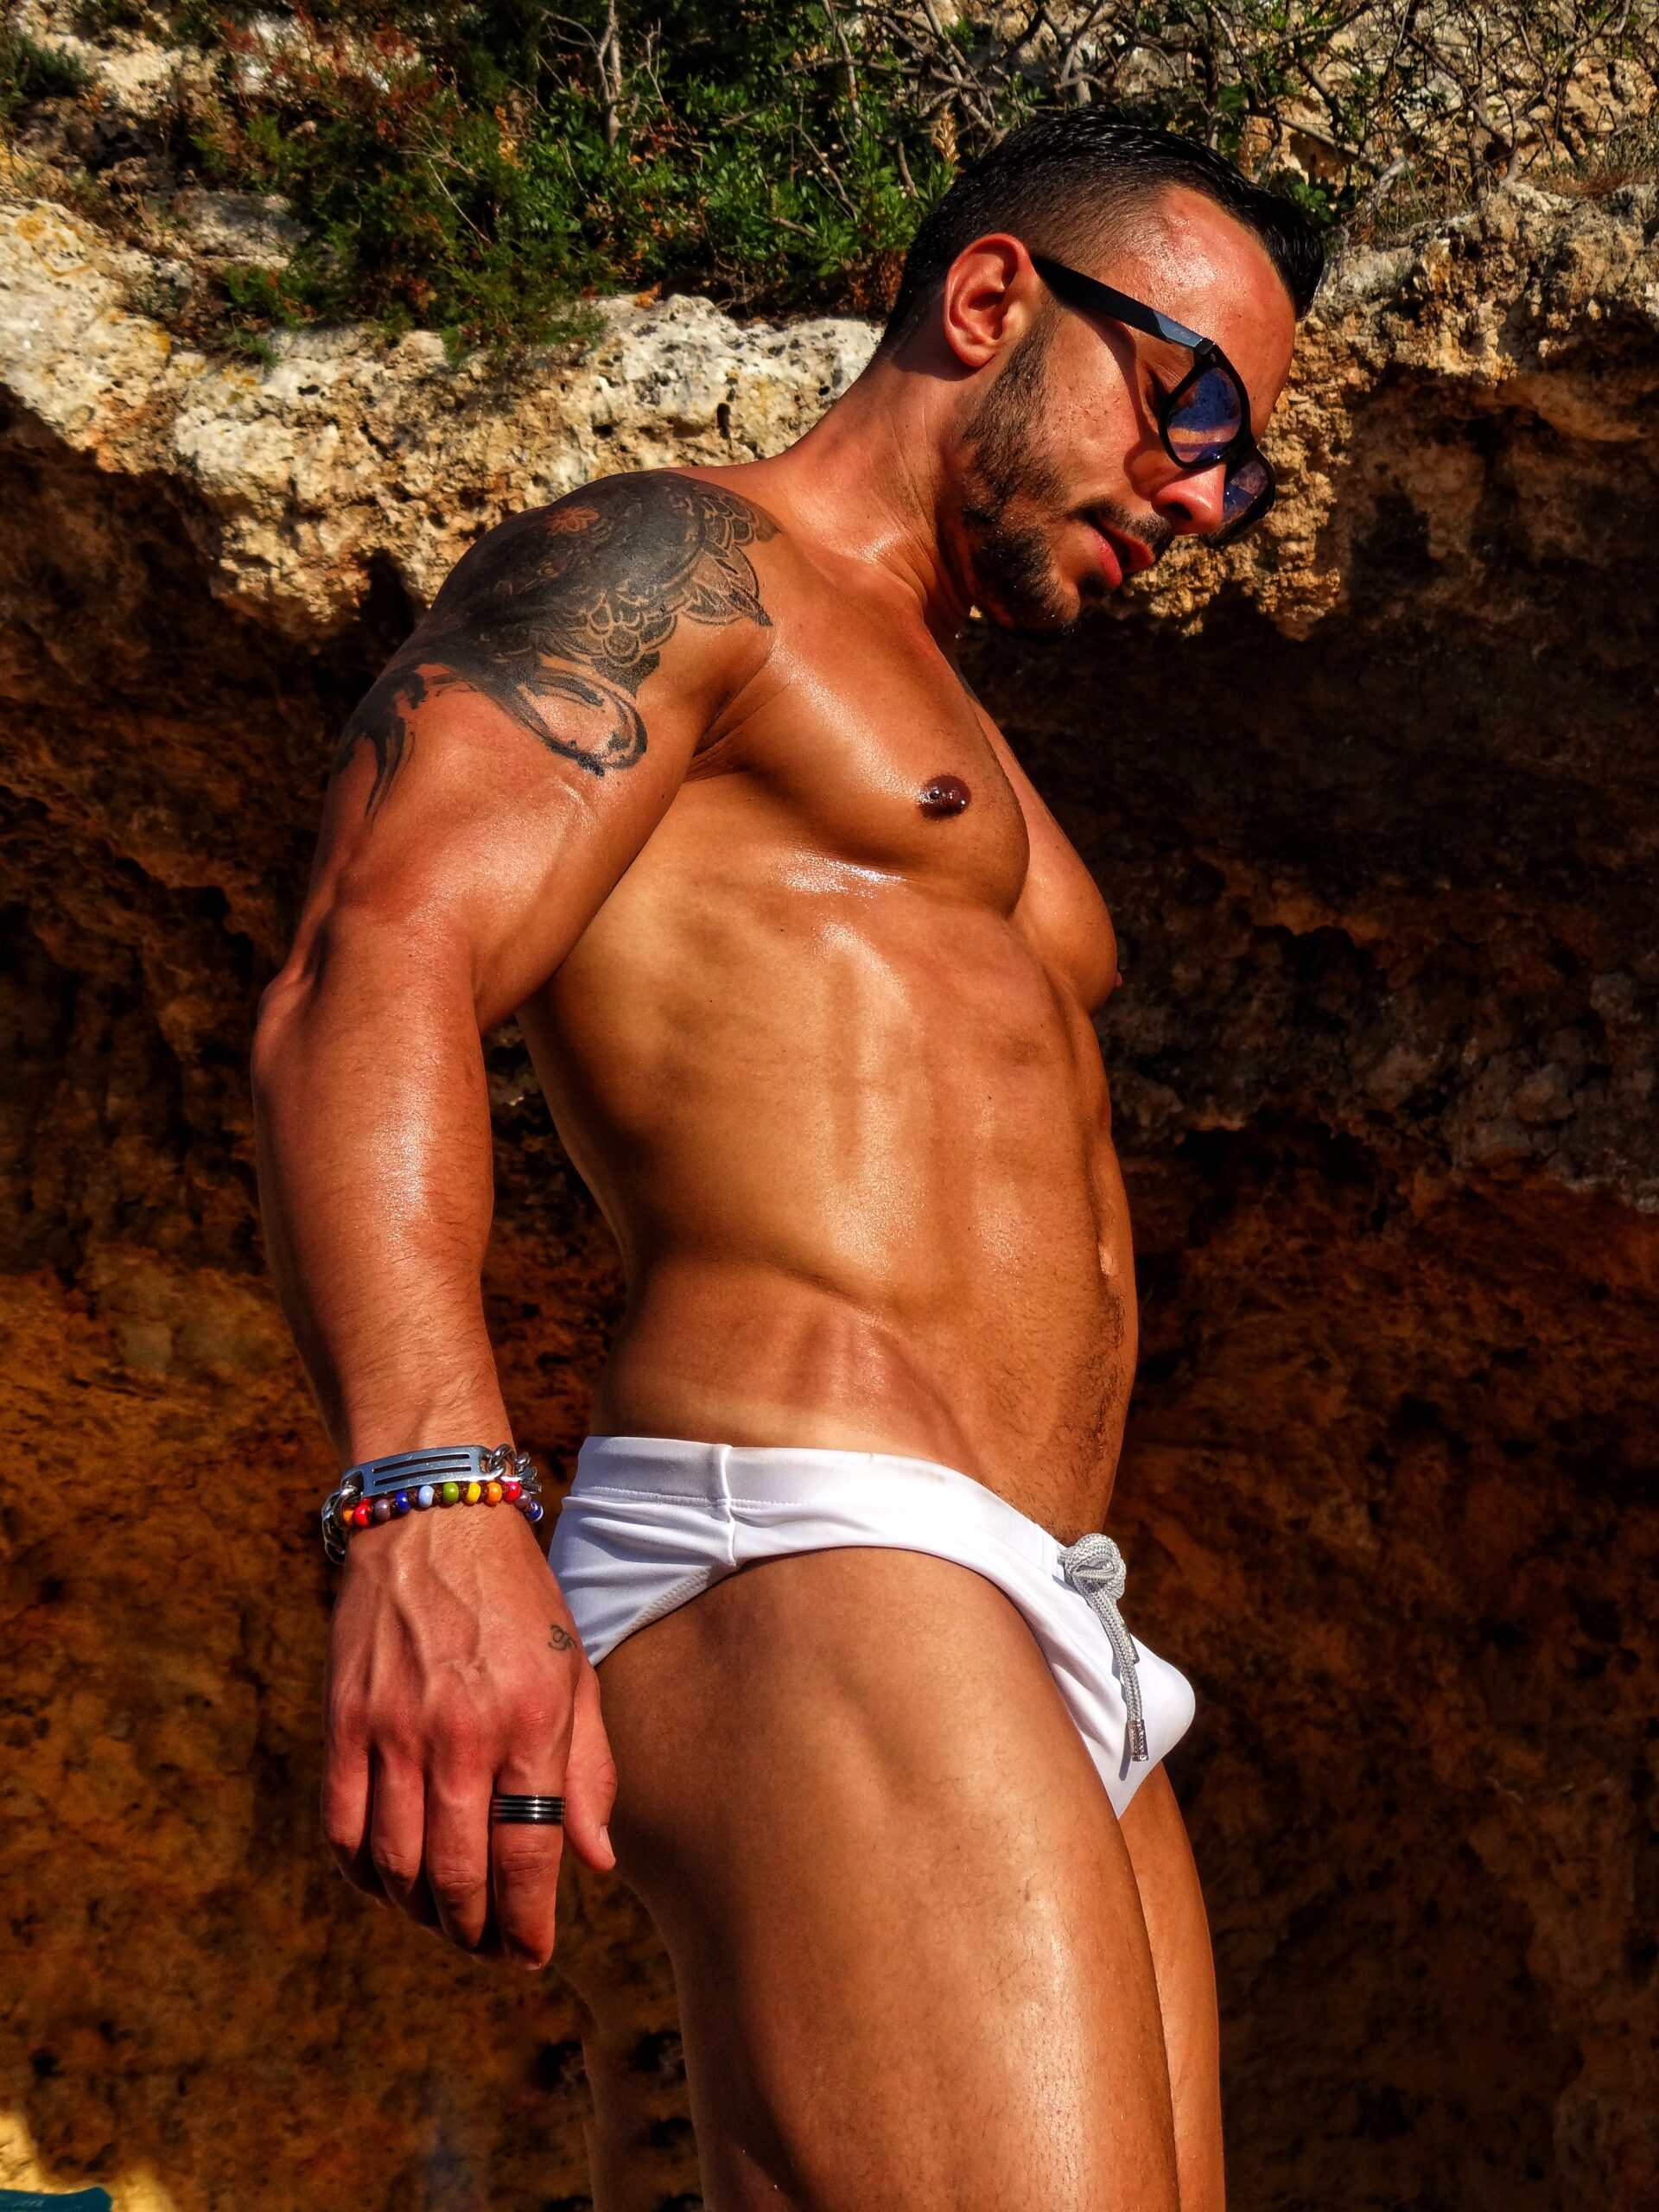 Torre Incina   Photo The Big Gay Podcast from Puglia the definitive guide to gay Puglia and its gay and nudist beaches.